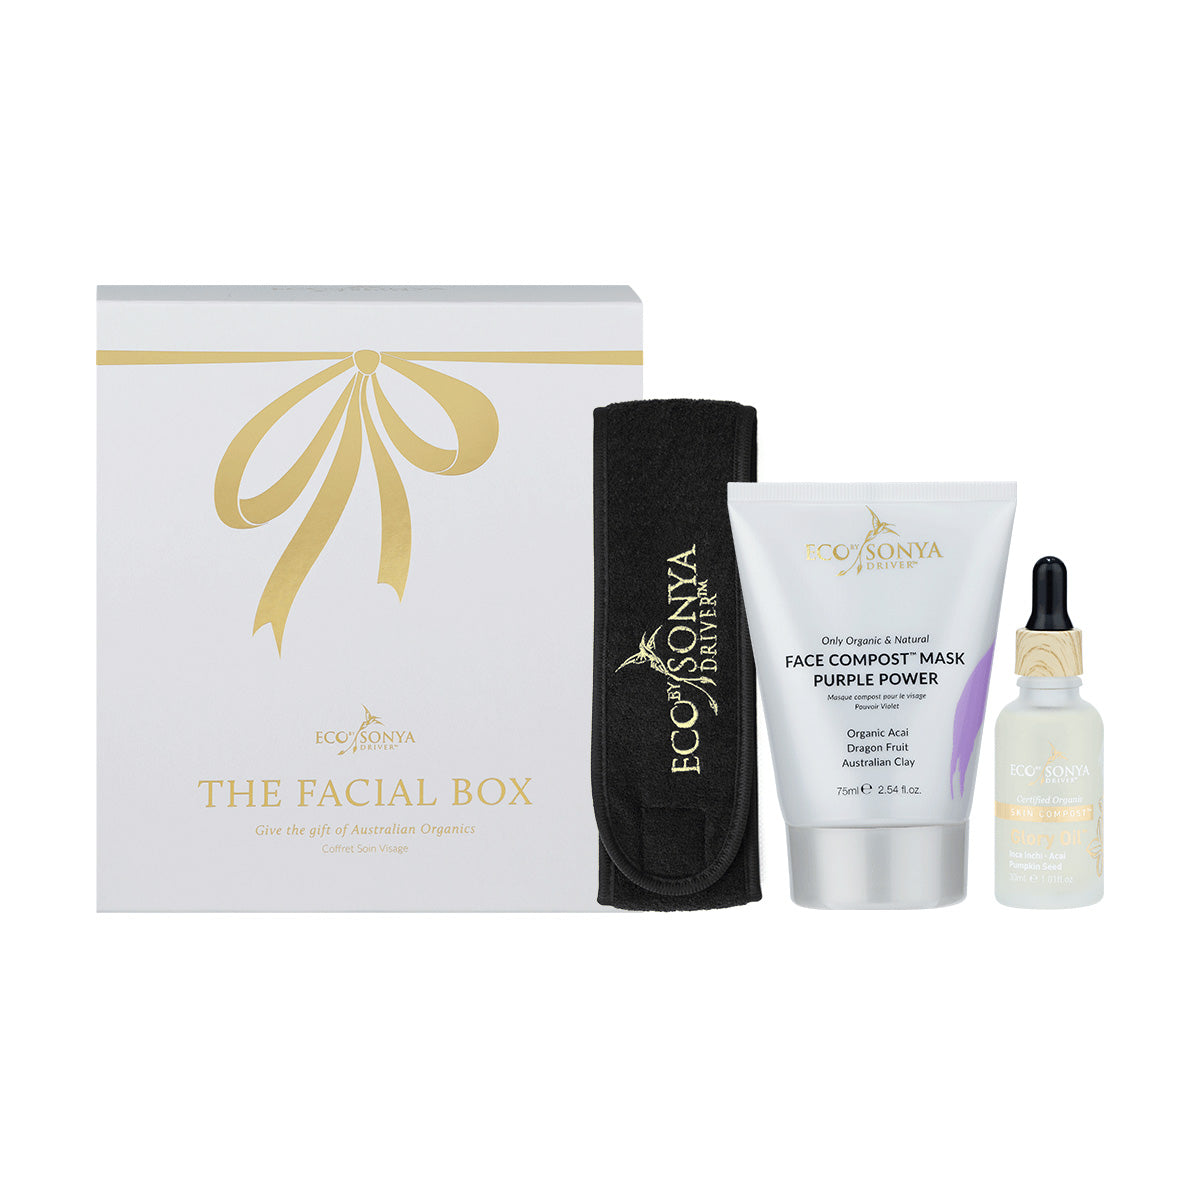 Eco Tan, Glory Oil, Christmas Gift Set, The Facial Box, Face Compost Mask, Organic, Australian, Natural, Gezichtsmasker, Natuurlijk,Detox, brighten, calm, smooth gezichtsmasker, gezicht, huidverzorging, purifying, hydrating, The Face Compost™ Purple Power Mask, Eco Tan The Face Compost™ Purple Power Mask, Eco Tan, Eco Tan x Nourished.